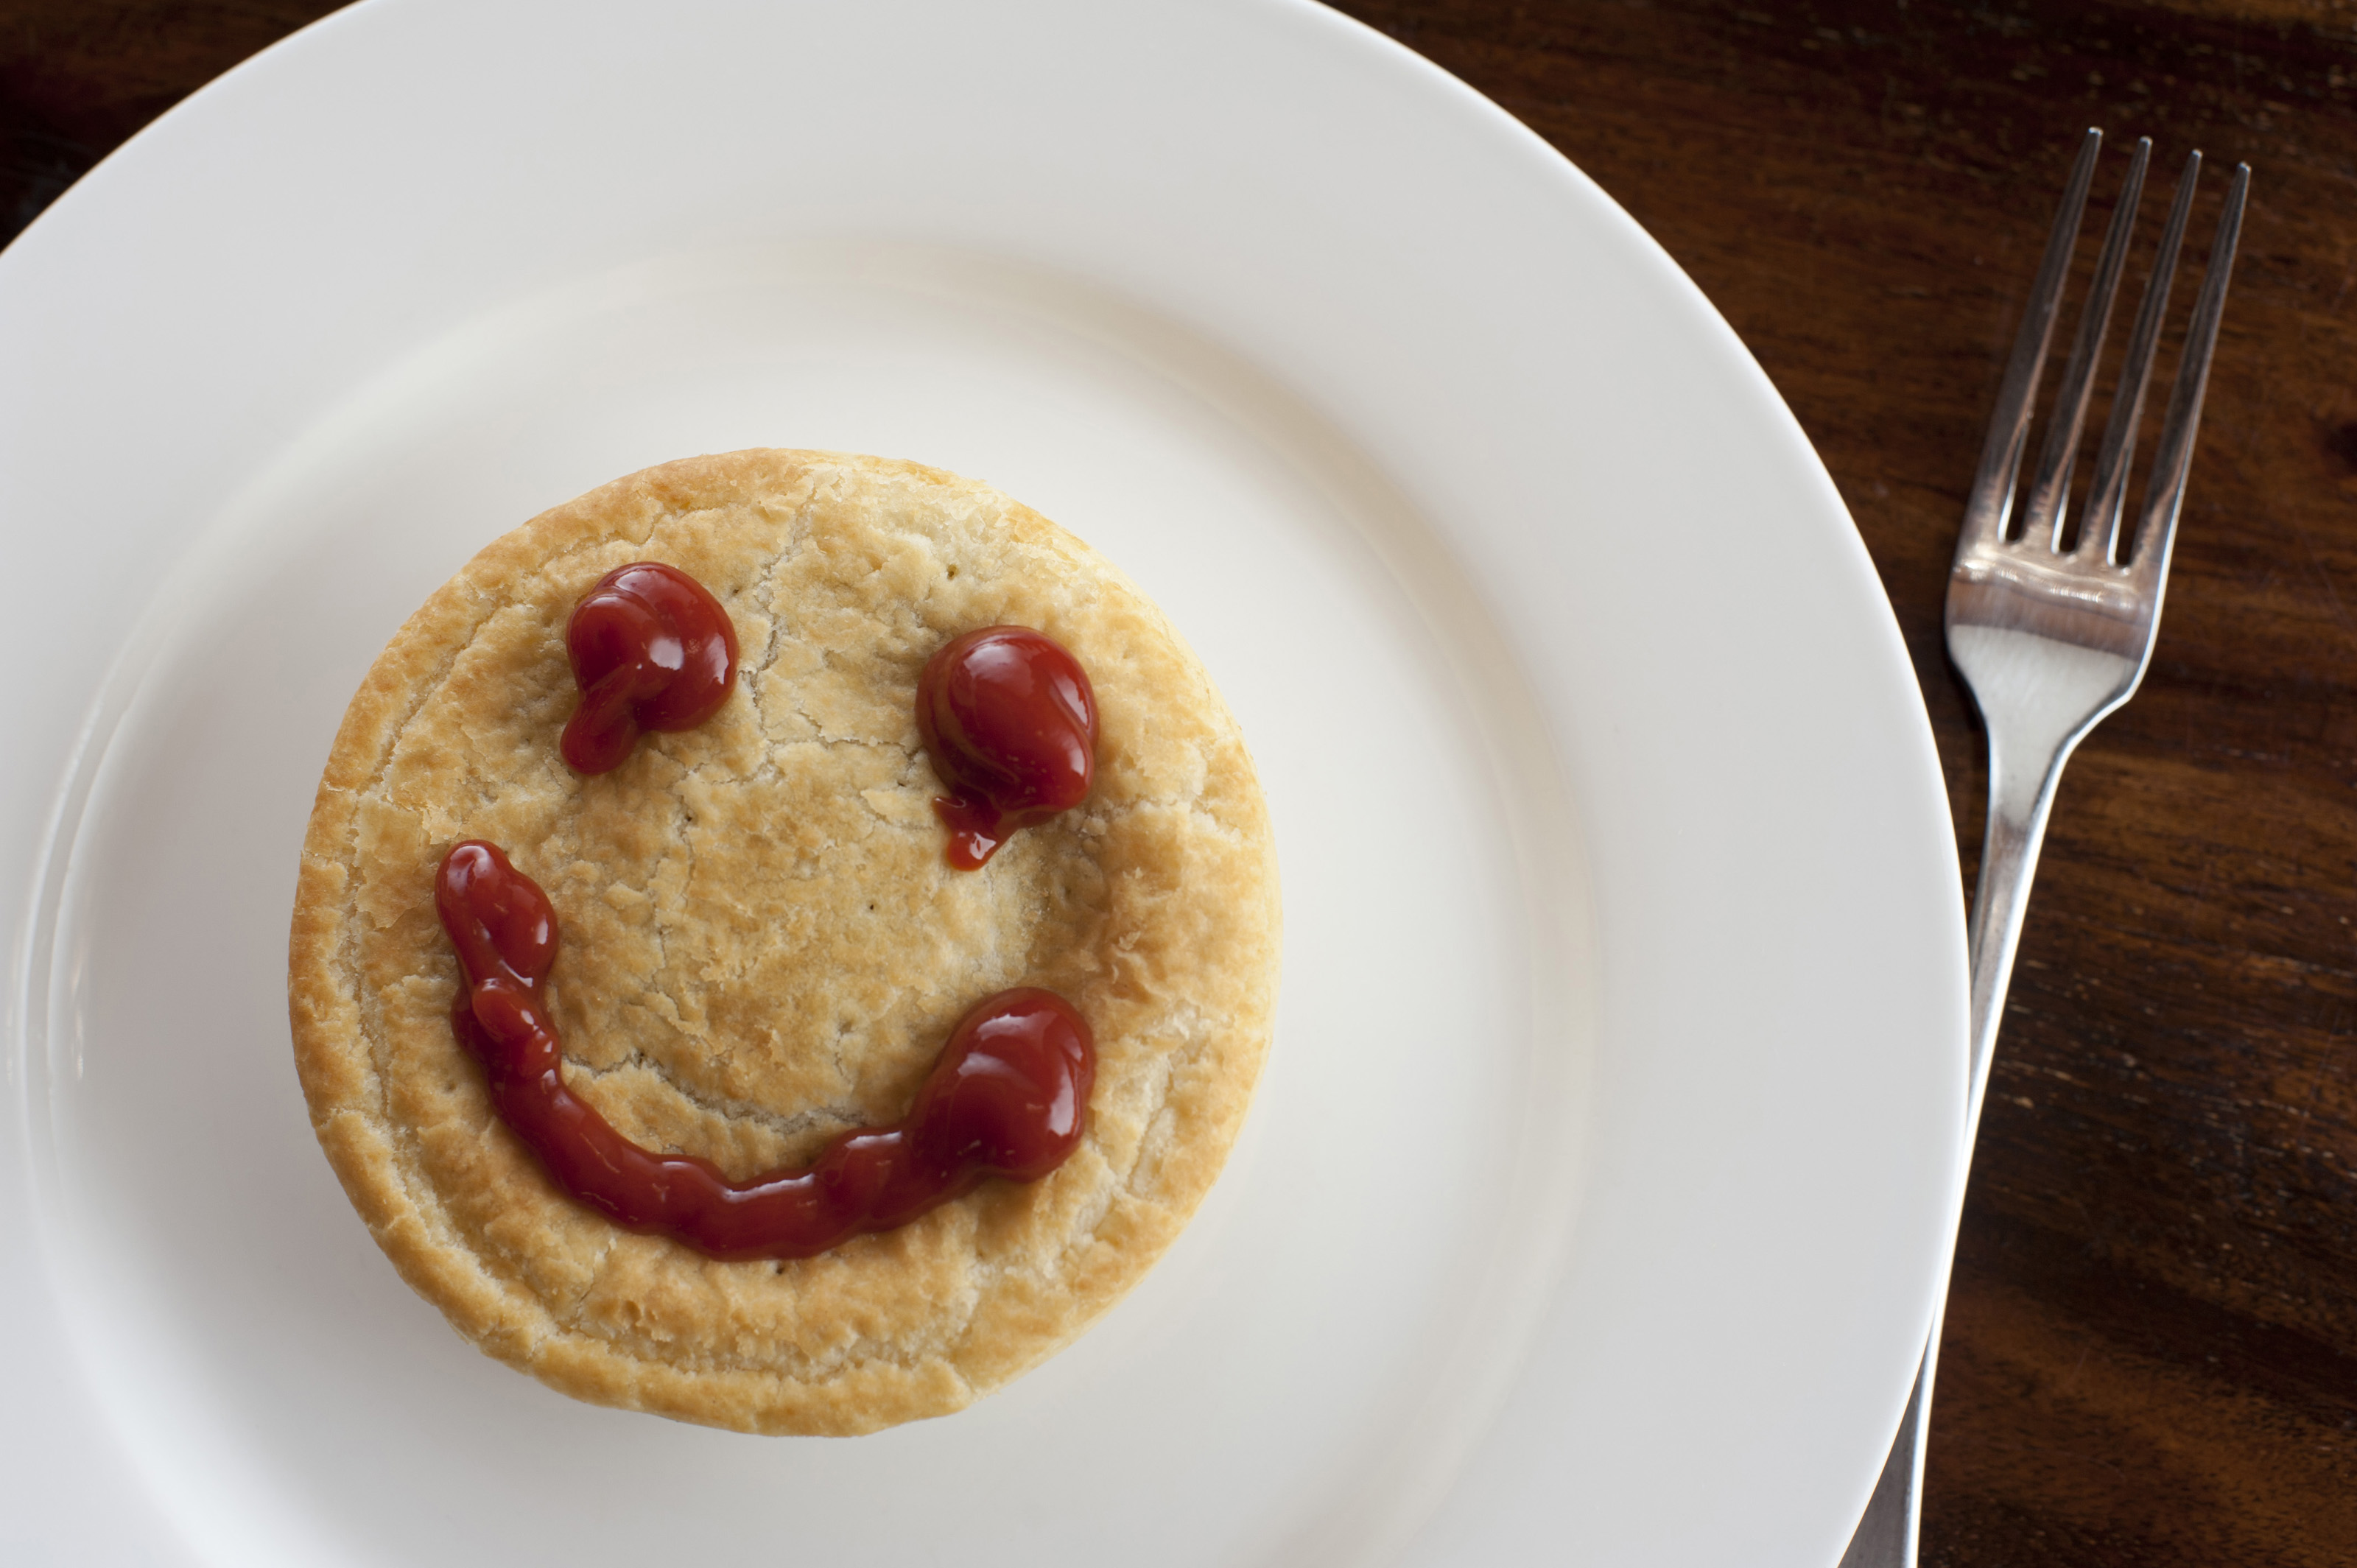 Happy meat pie with a smiley face formed of rich brown gravy on top of the & Free Stock Photo 10482 Happy meat pie with a smiley face ...